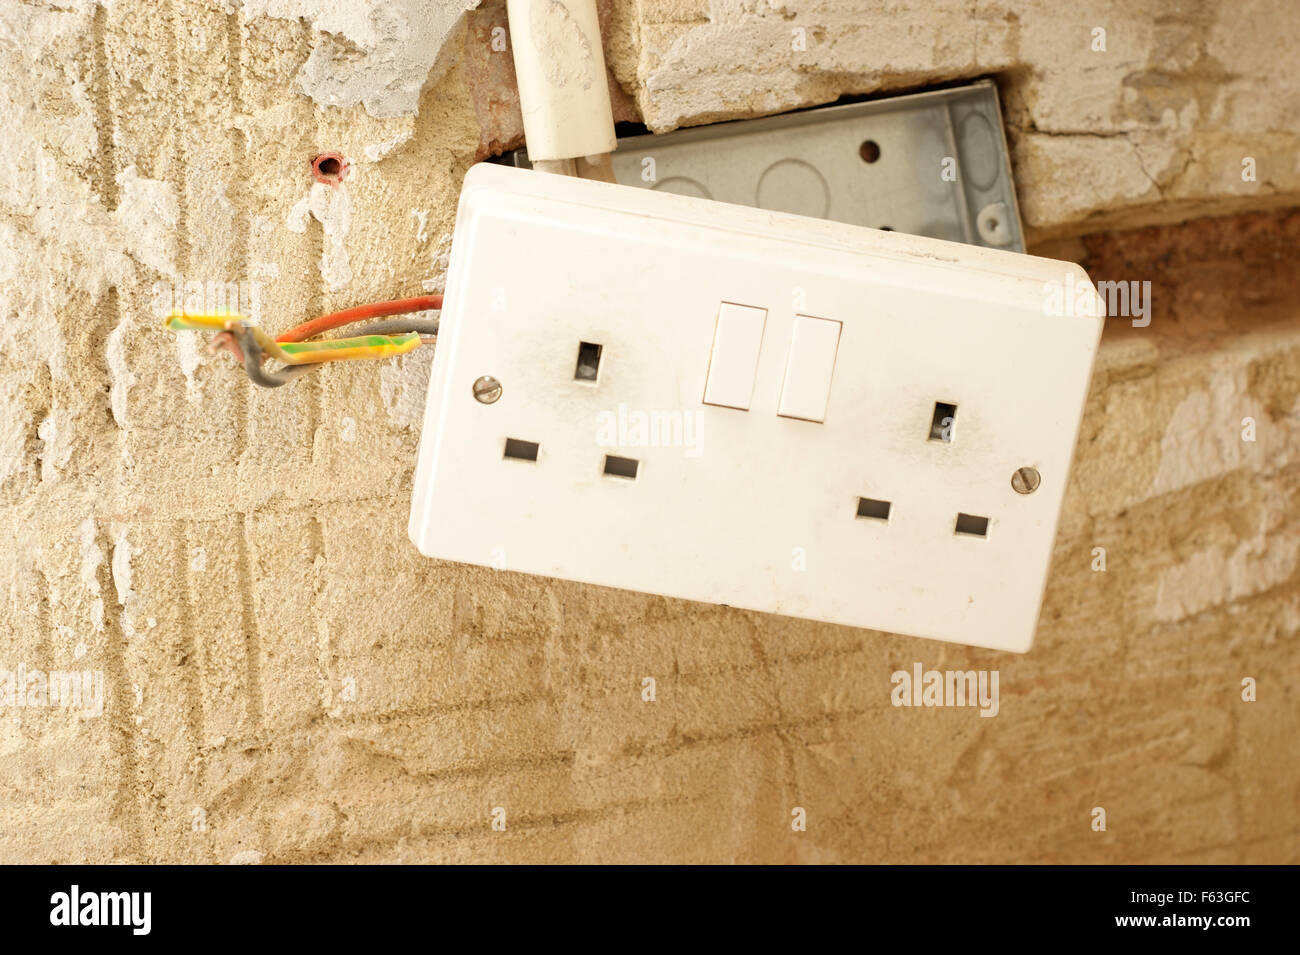 Plug Sockets Uk Stock Photos Images Alamy Socket Wiring Electric With Exposed In A Rented Social Housing Property House That Needs Attending